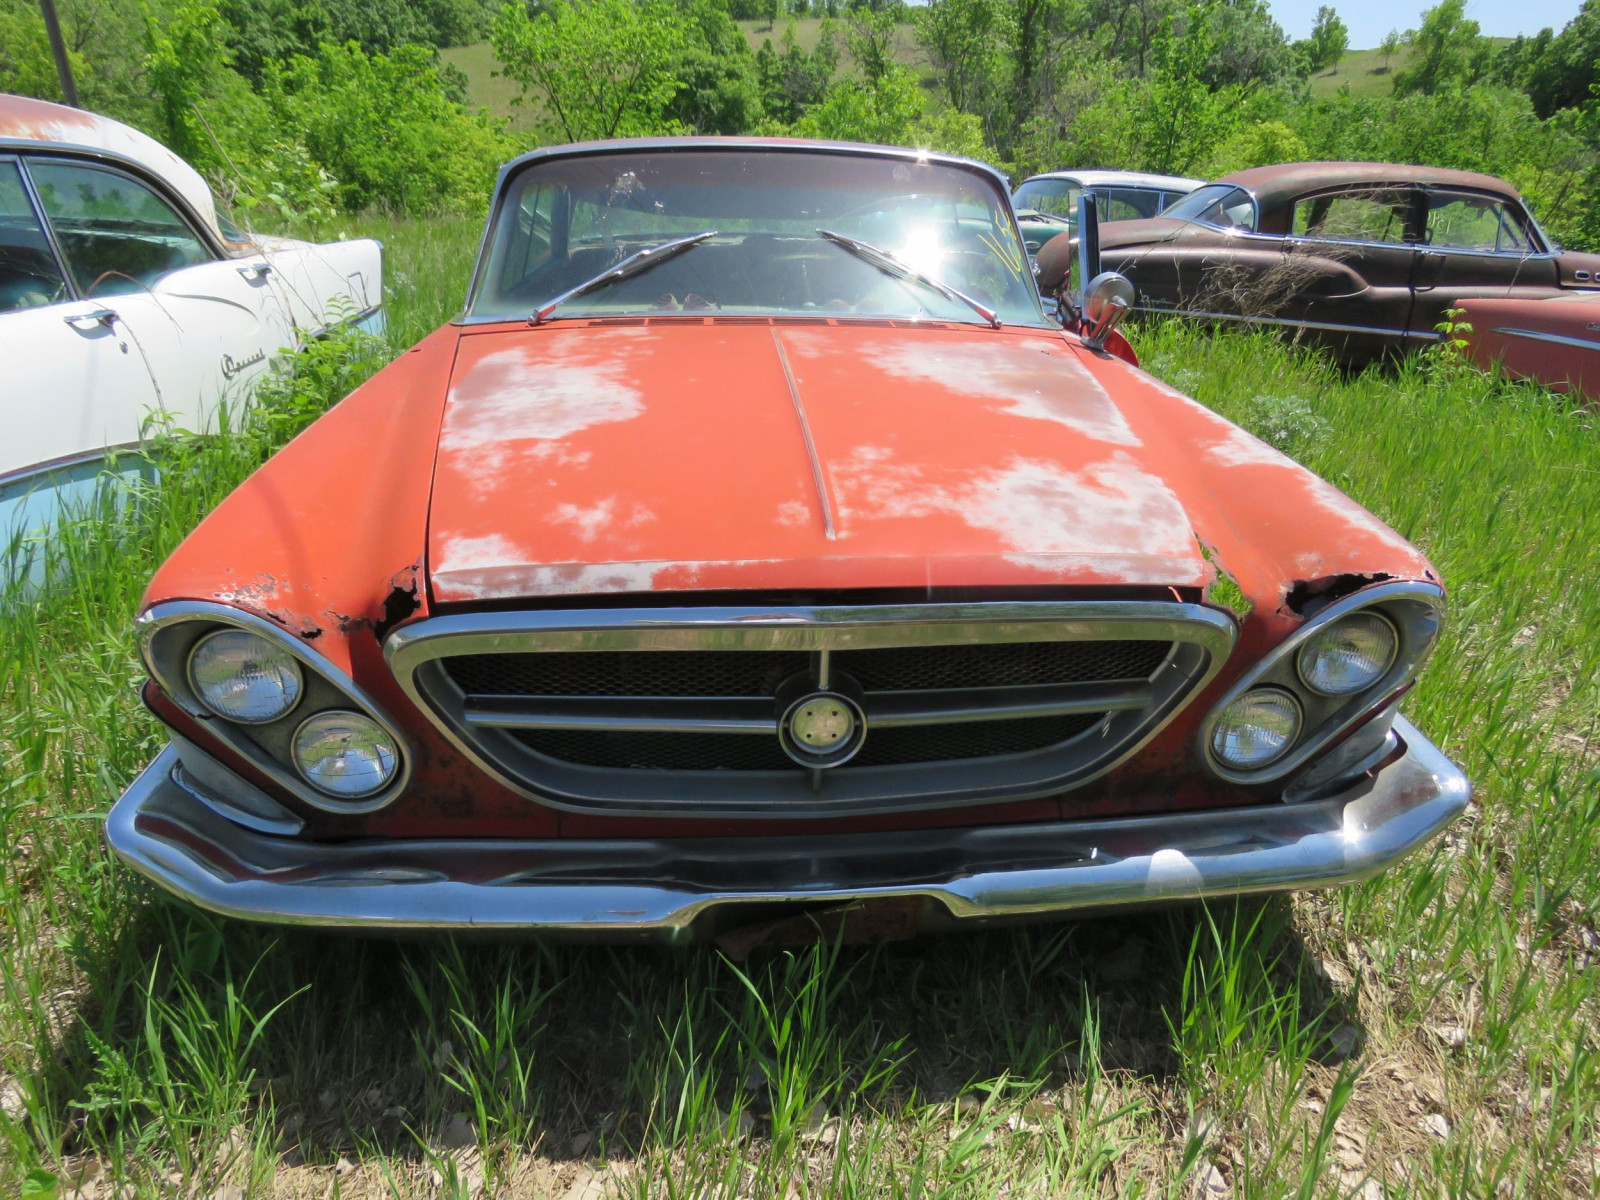 Chrysler 4dr Sedan for Rod or Restore or parts - Image 2